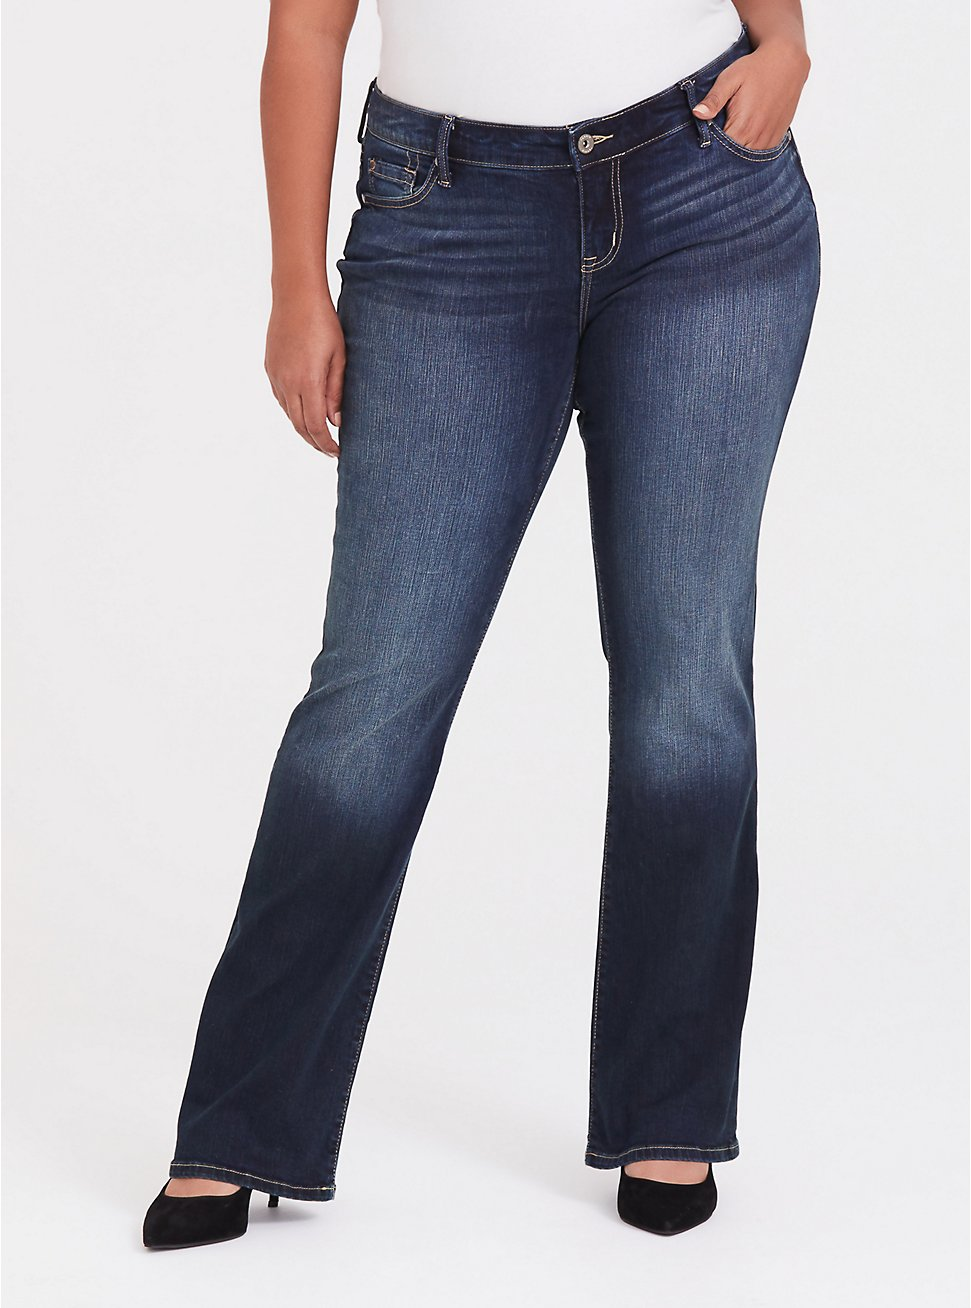 Relaxed Boot Jean - Vintage Stretch Dark Wash, BAYOU, hi-res